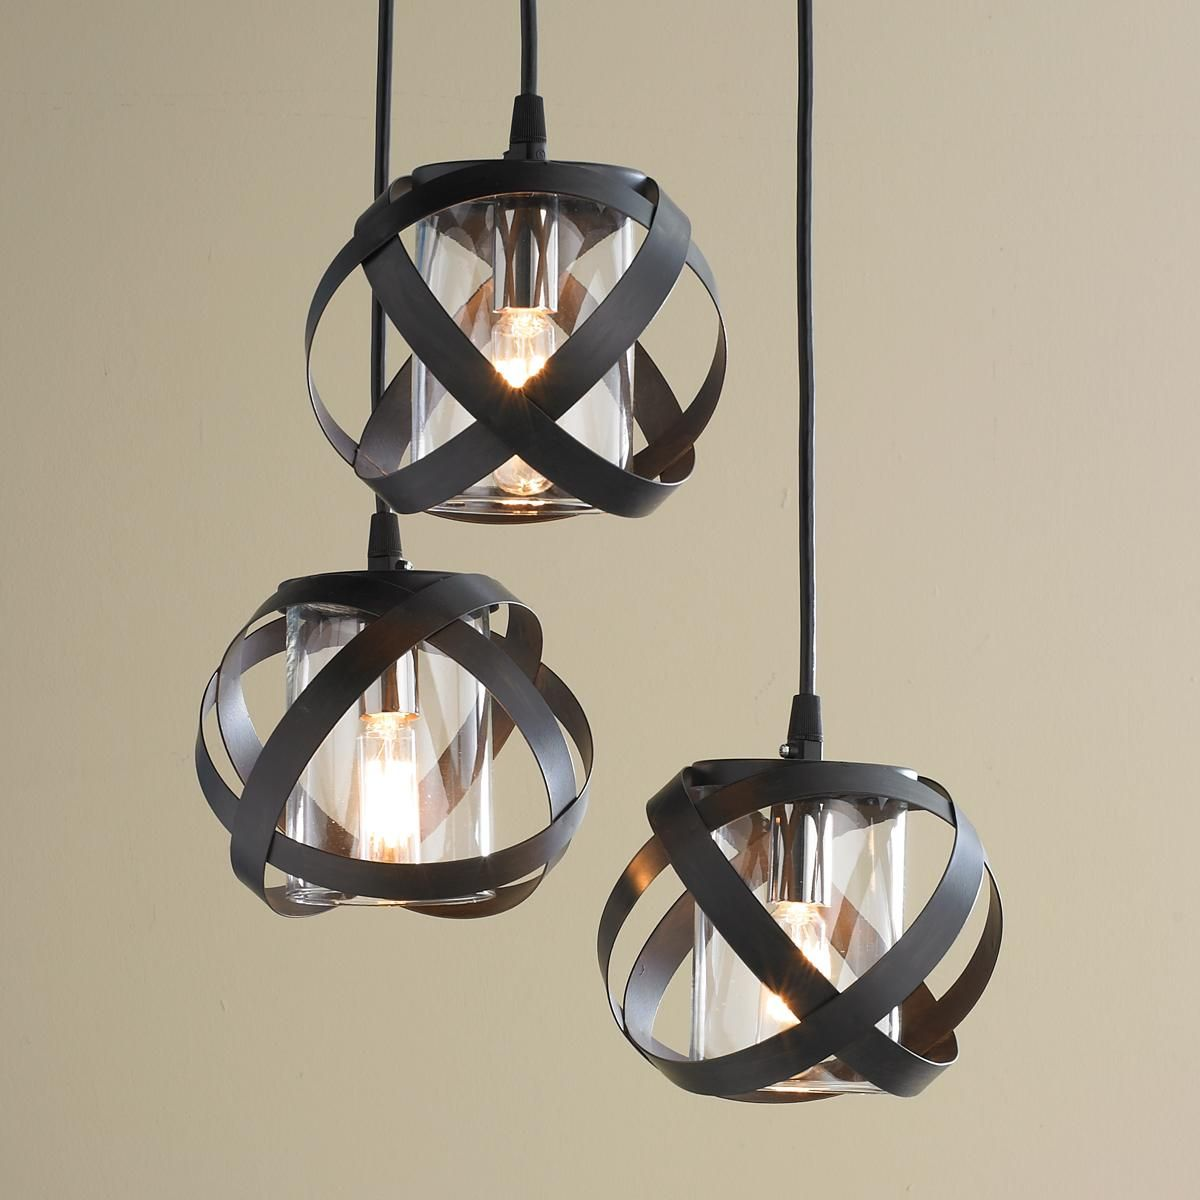 Galaxy metal ribbon pendant chandelier iluminacin galaxy metal ribbon pendant chandelier metal straps in an industrial inspired bronze finish orbit clear glass aloadofball Choice Image